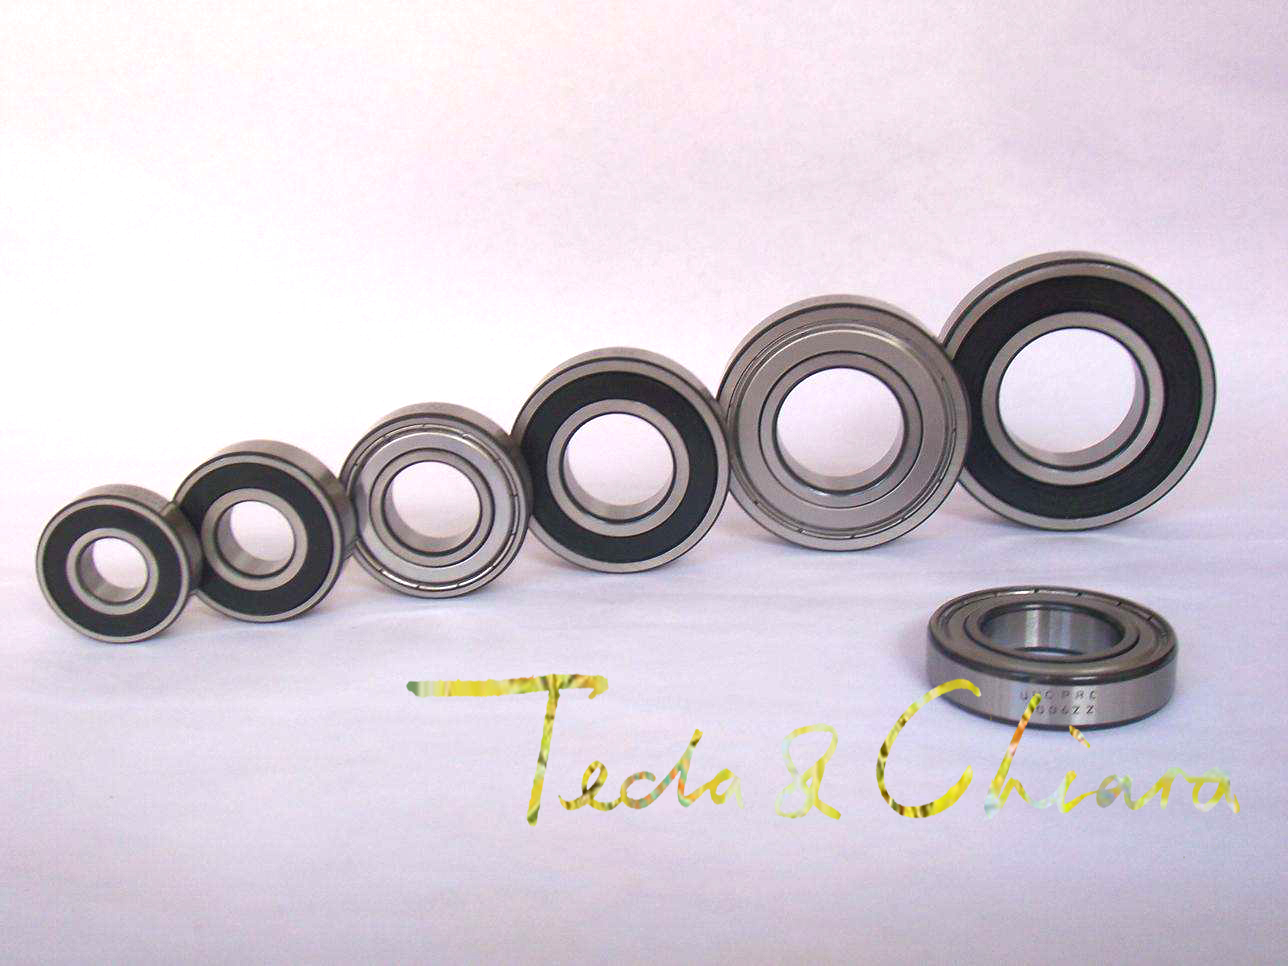 6000 6000ZZ 6000RS 6000-2Z 6000Z 6000-2RS ZZ RS RZ 2RZ Deep Groove Ball Bearings 10 X 26 X 8mm